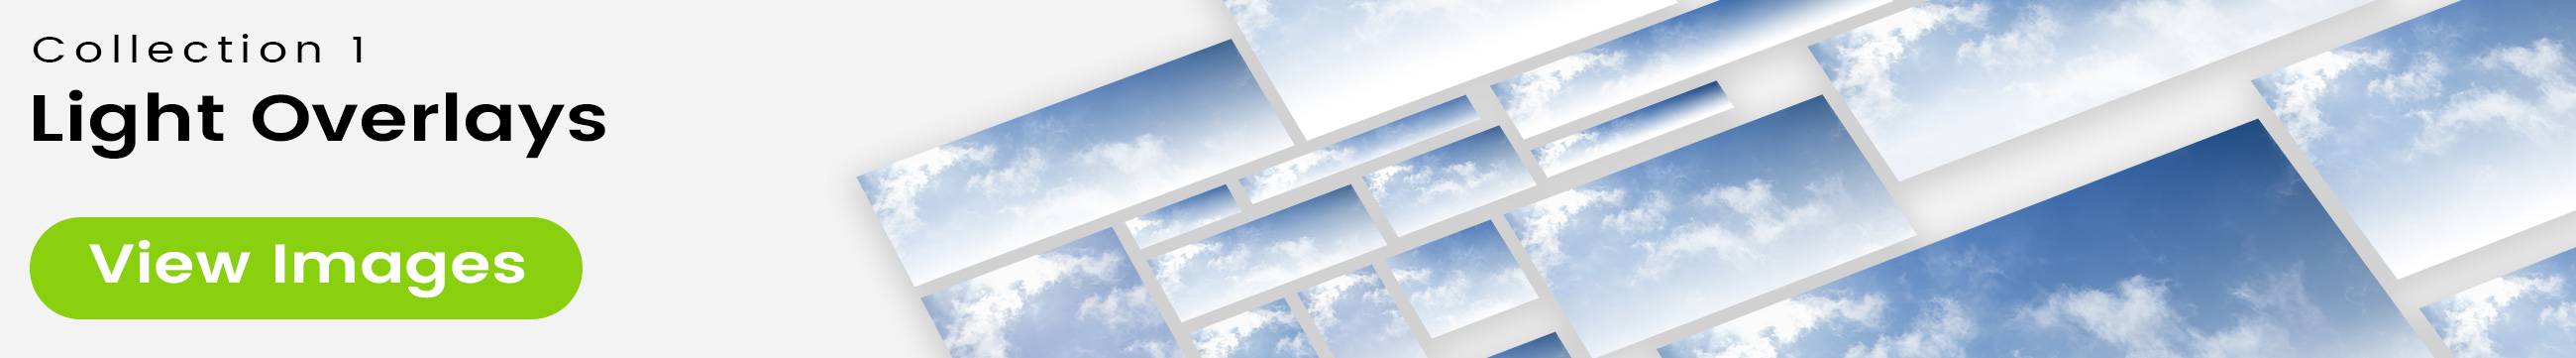 See 25 bonus images included with clouds stock image 9484. Collection 1 of 4 features a light overlay design.